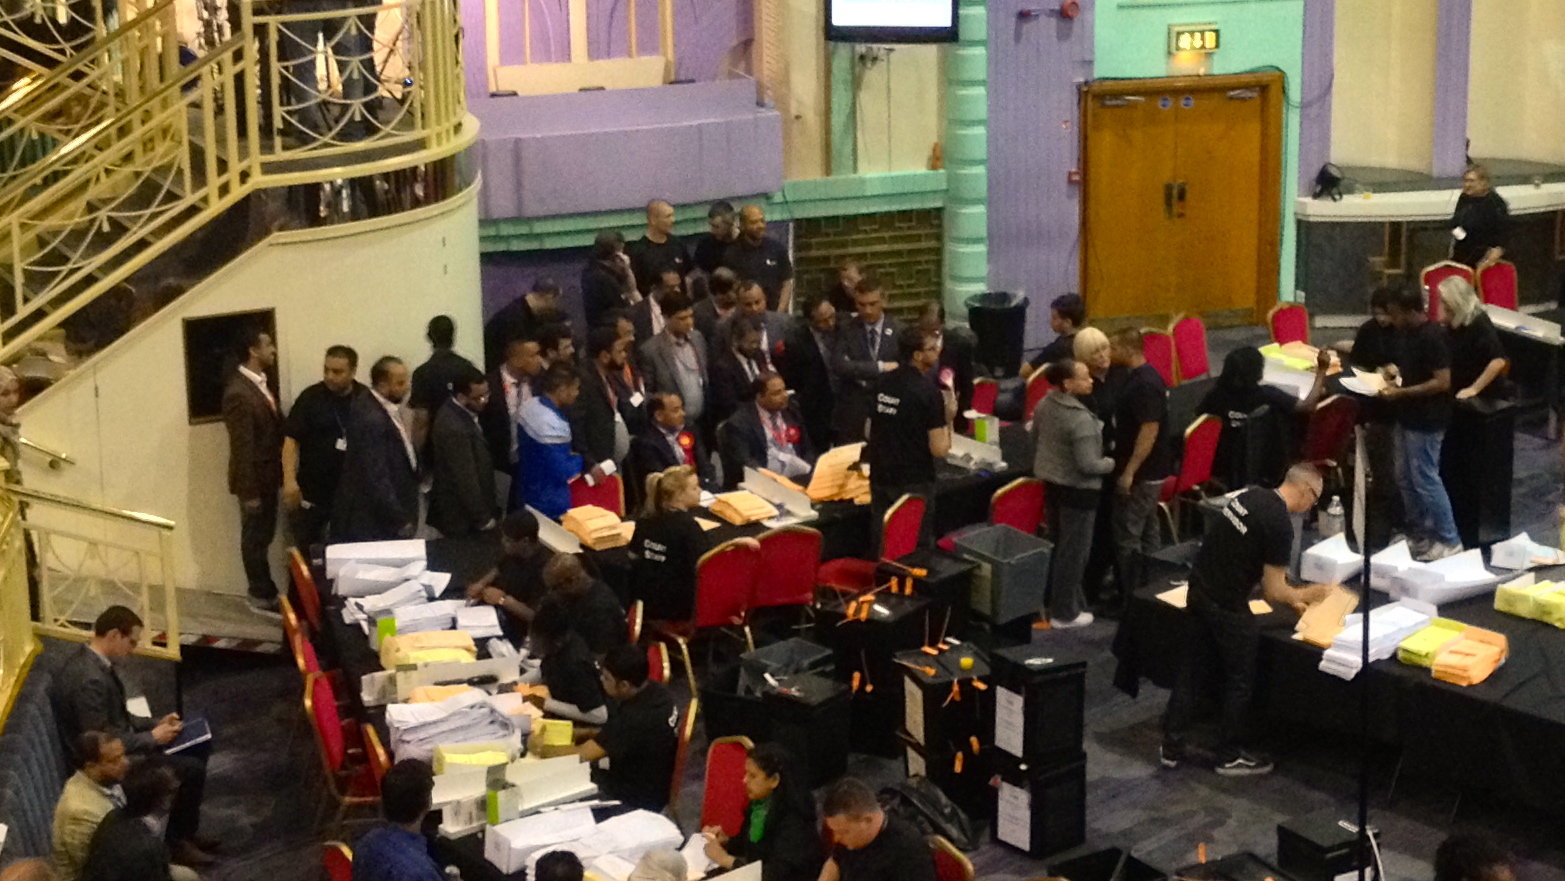 Labour supporters gathered around the count. Photo: Andy Goddard